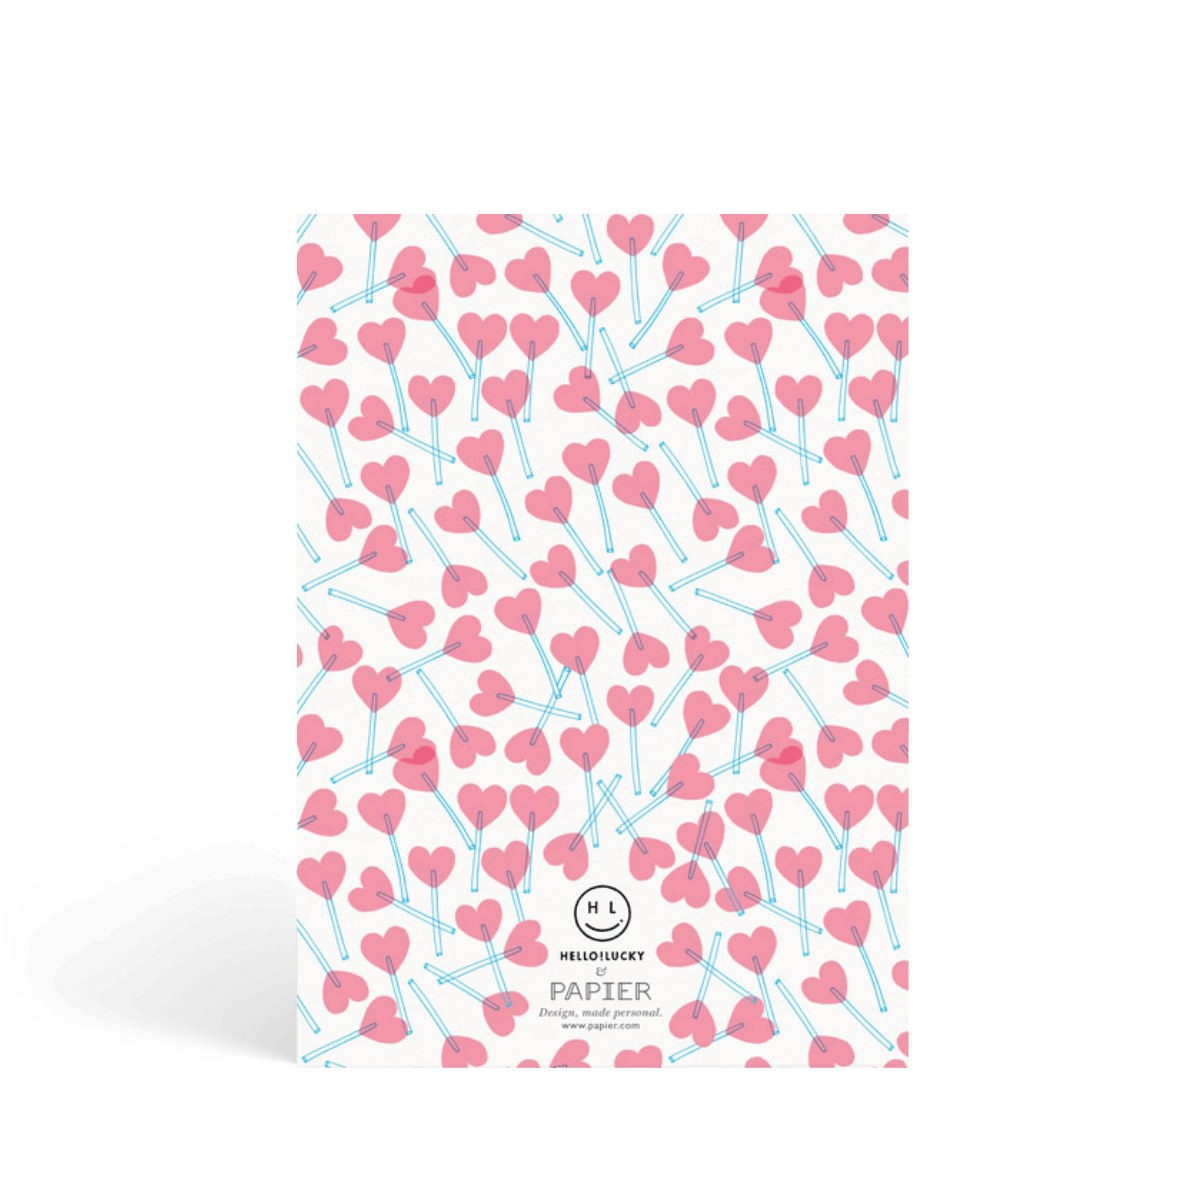 Https%3a%2f%2fwww.papier.com%2fproduct image%2f56471%2f5%2fheart lollies 13564 back 1542369818.png?ixlib=rb 1.1